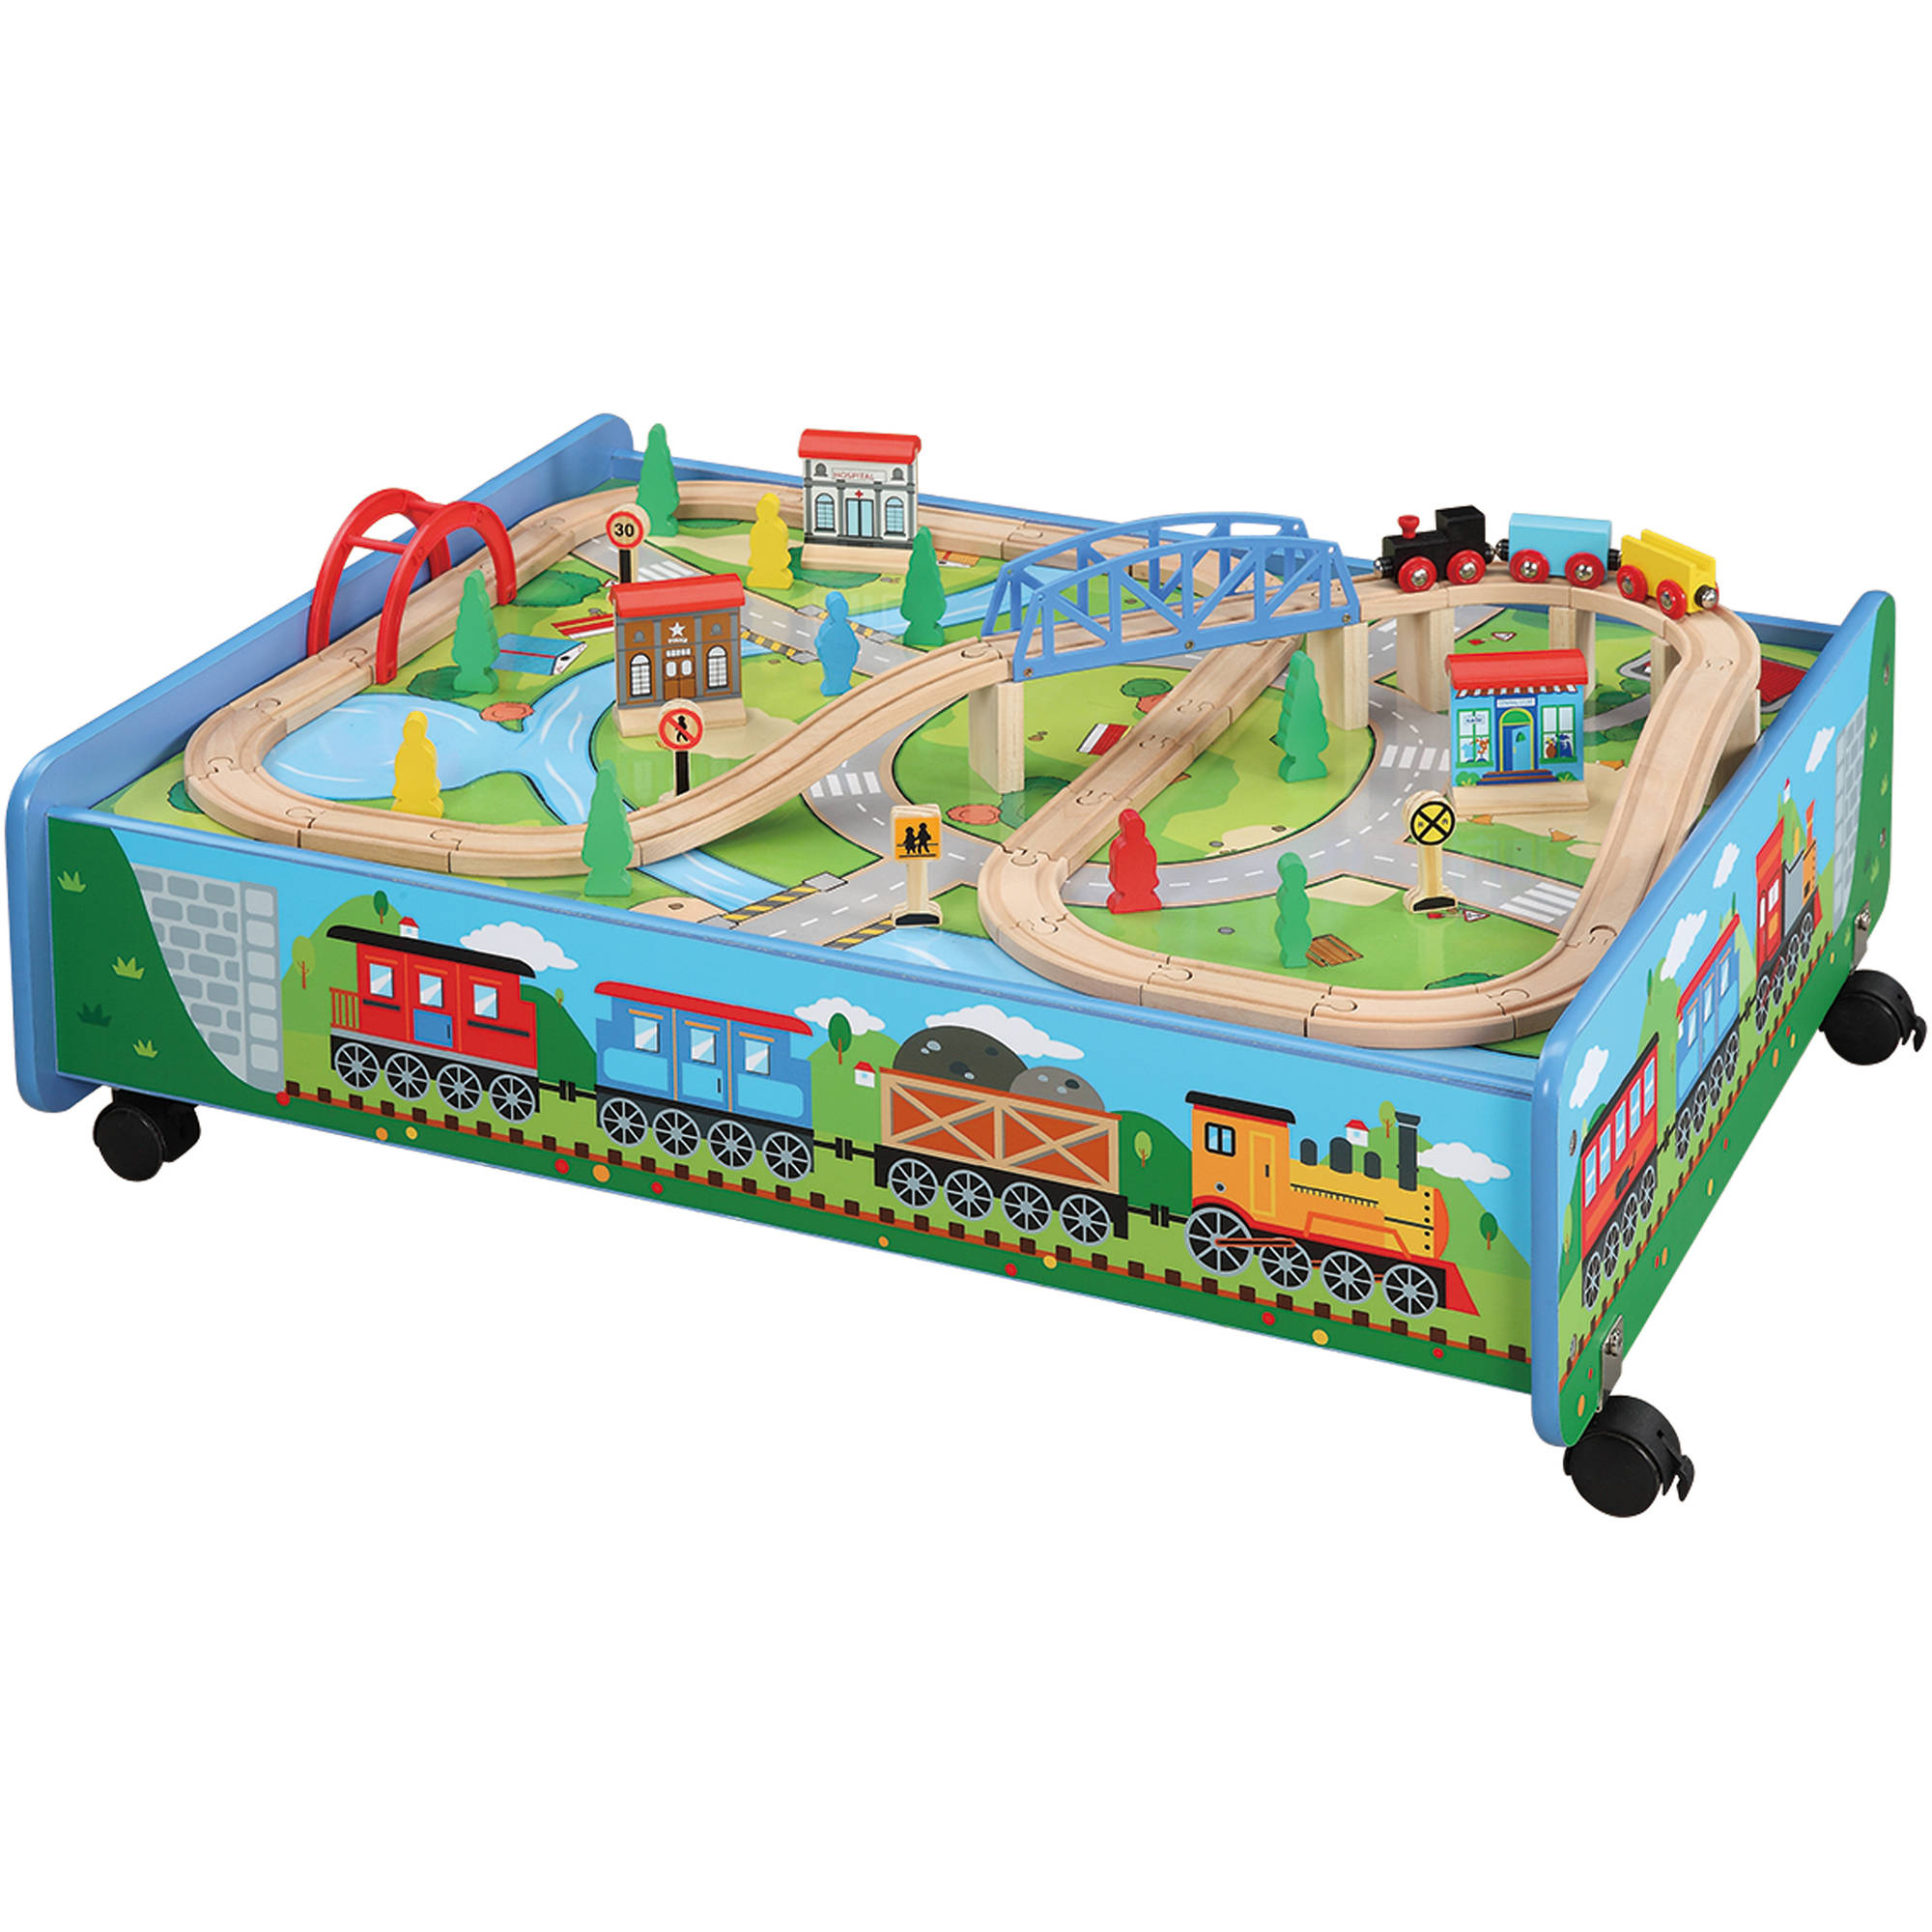 62-Piece Wooden Train Set with Train Table/Trundle, BRIO and Thomas and Friends Compatible